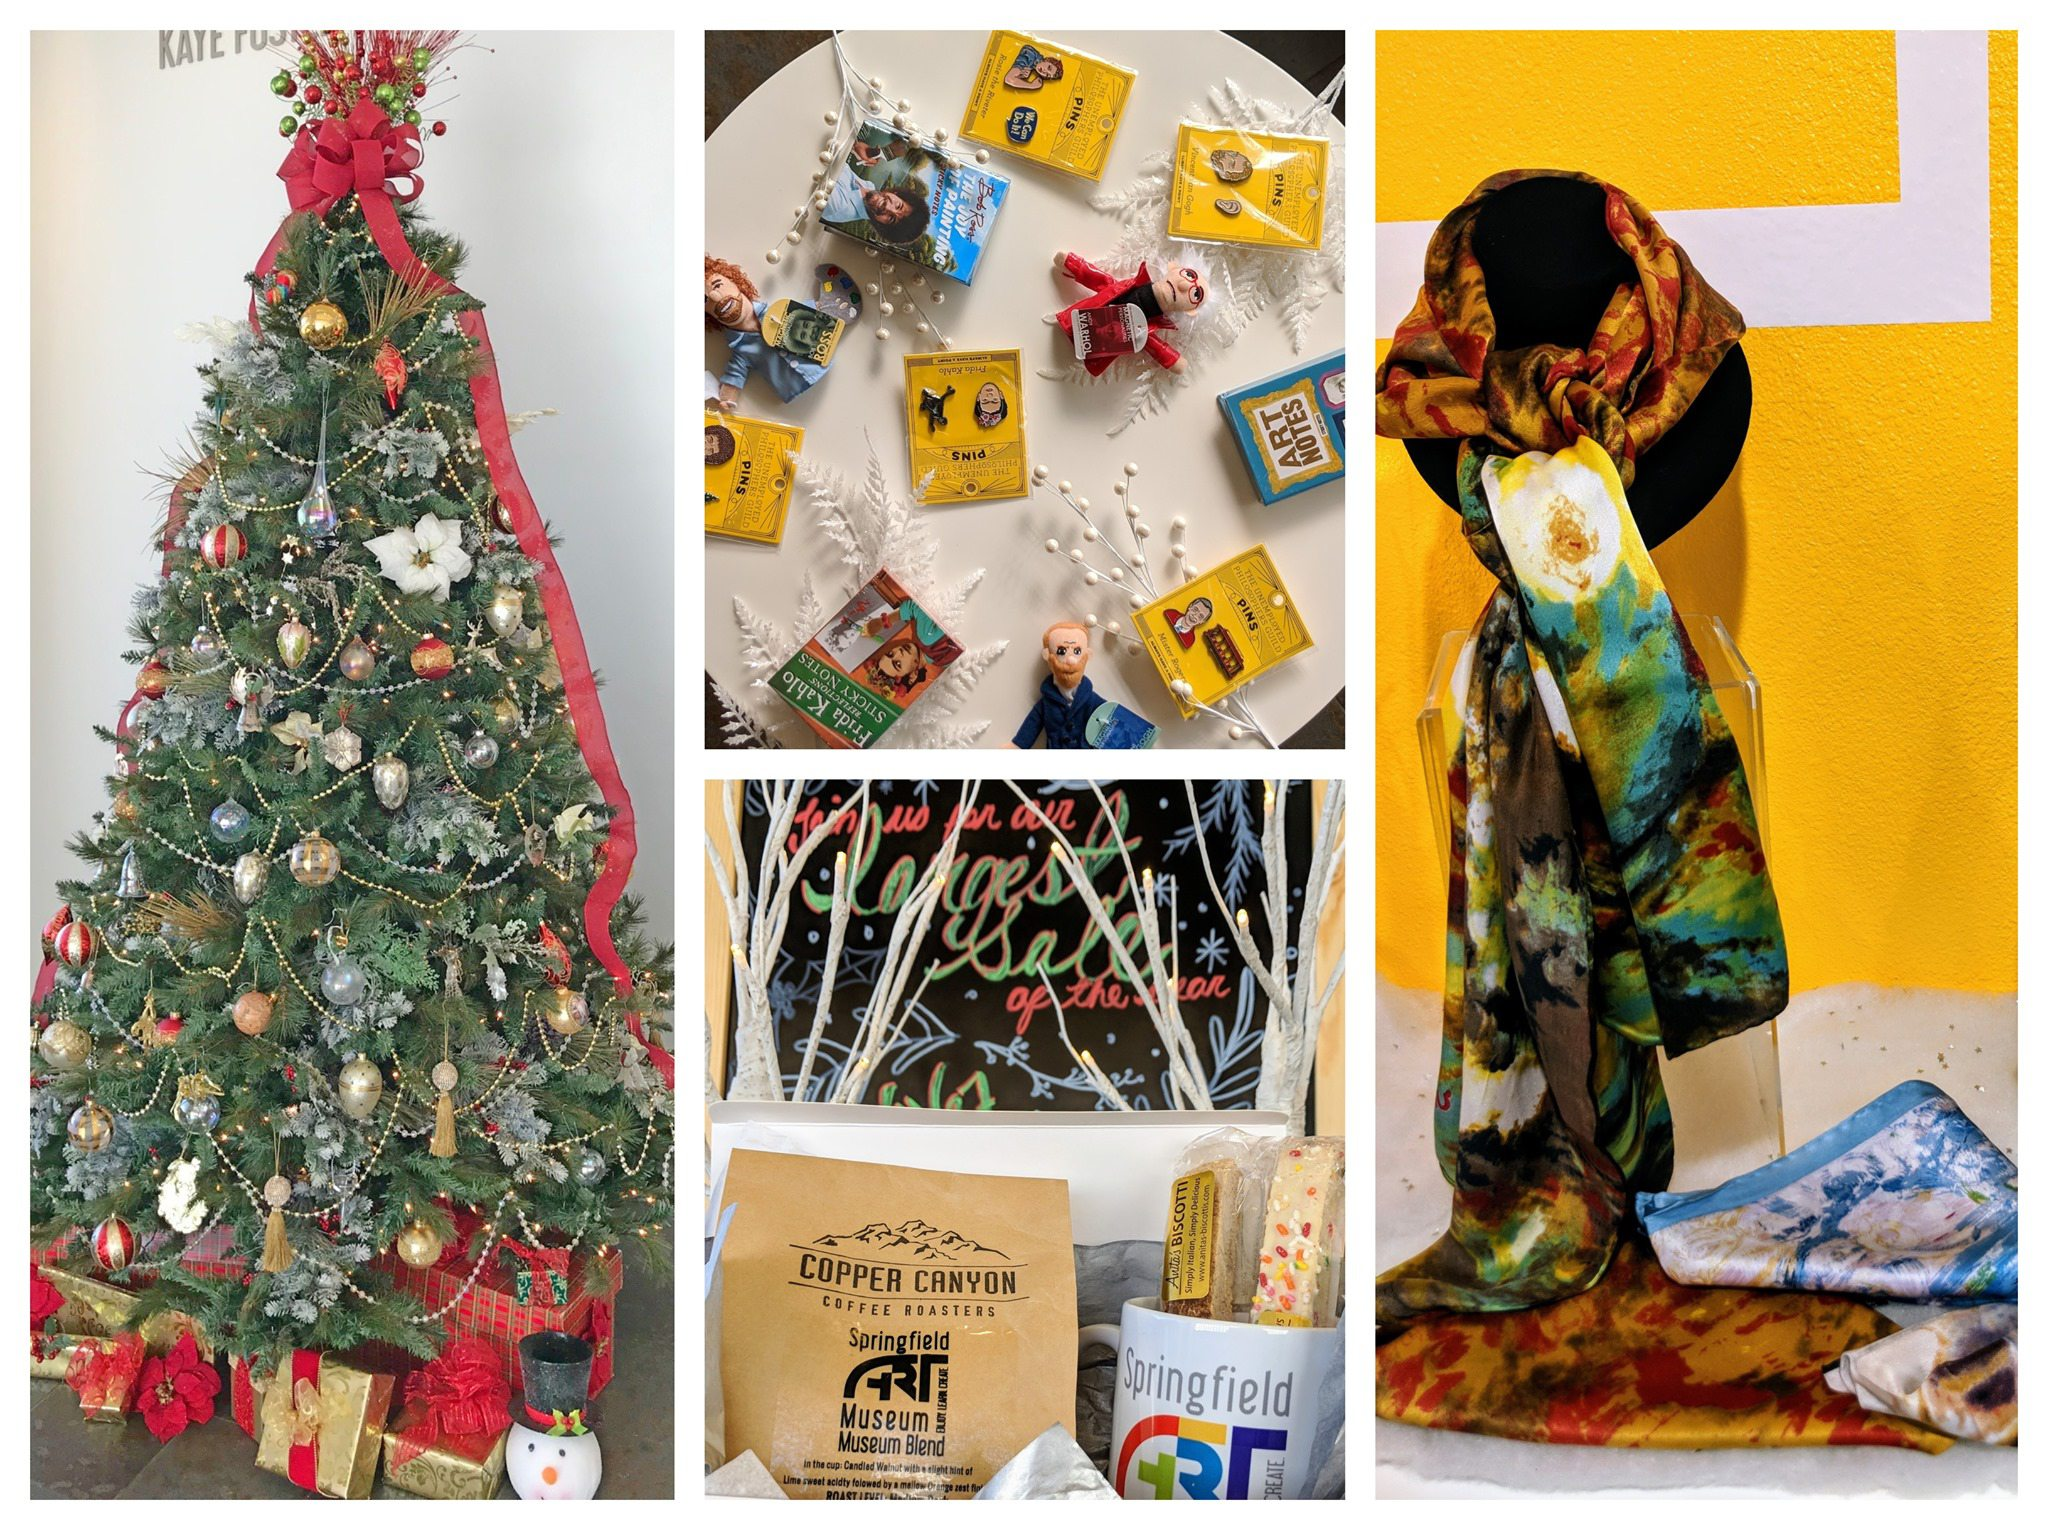 Holiday pop-up market in Springfield, MO